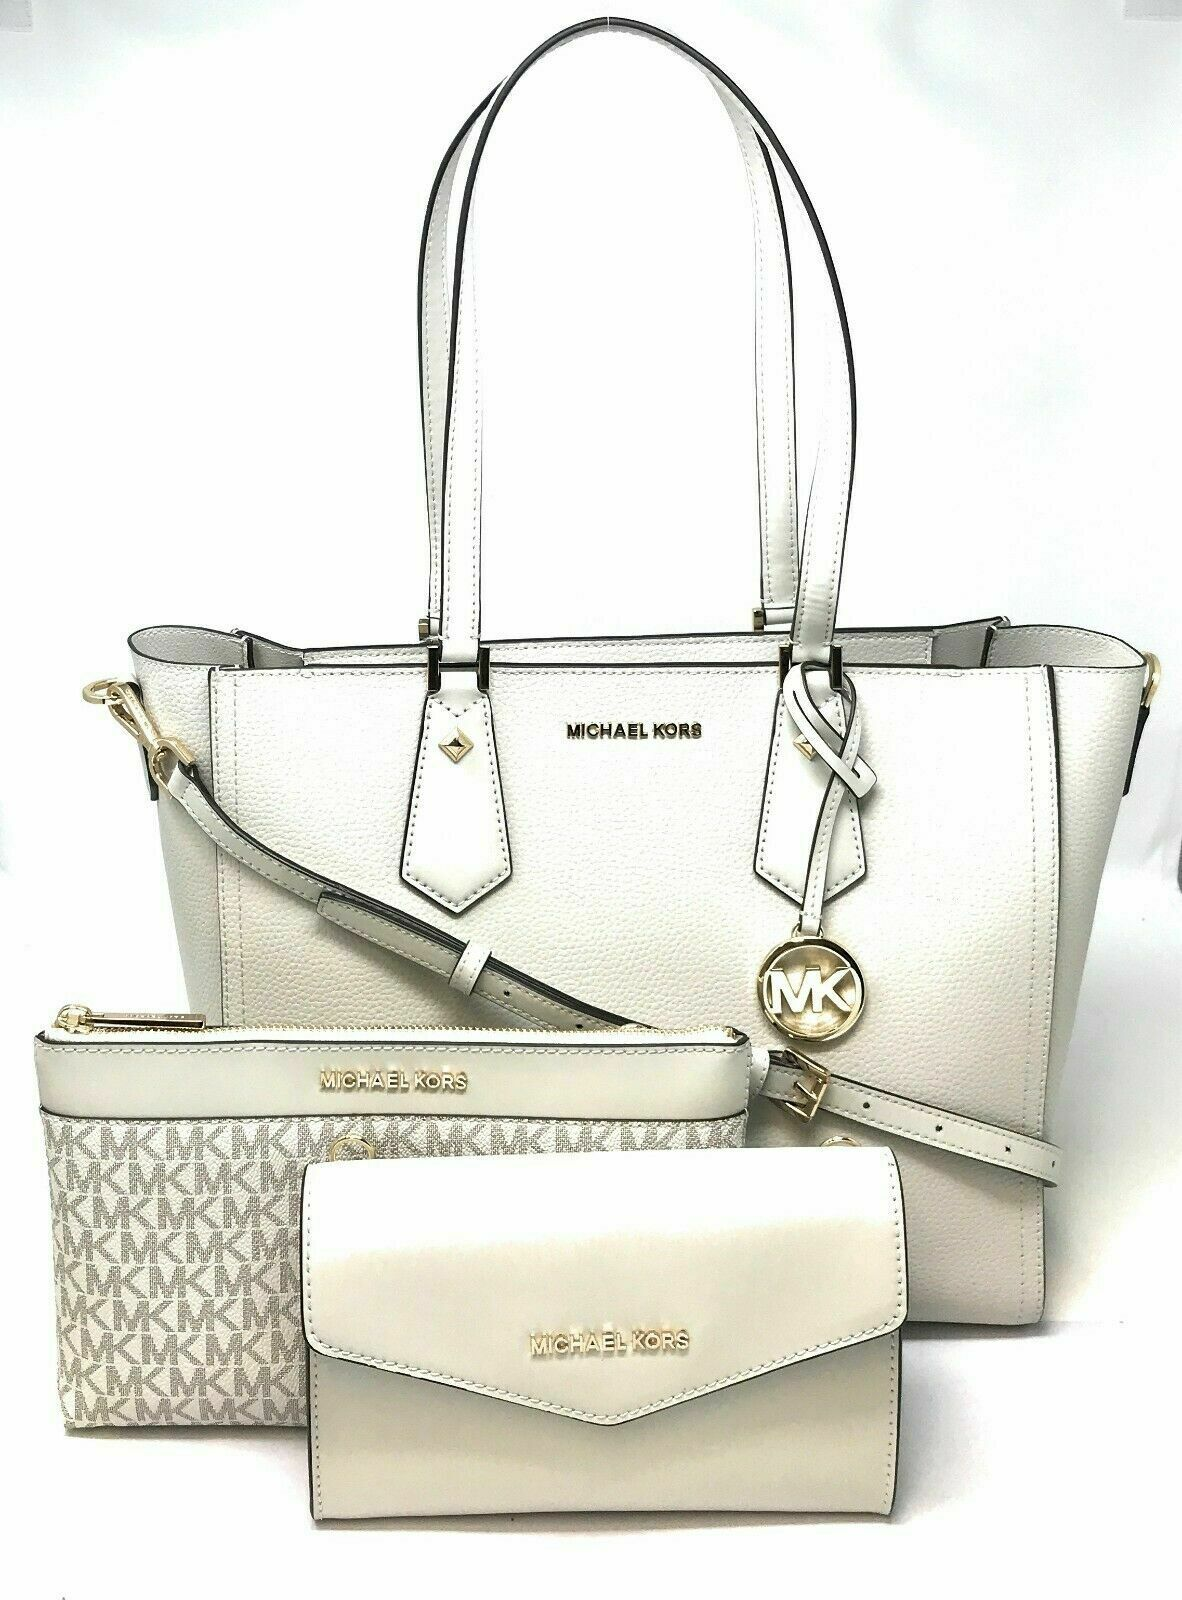 New Michael Kors Kimberly 3 In 1 Leather Tote Crossbody Bag Clutch Clothing, Shoes & Accessories